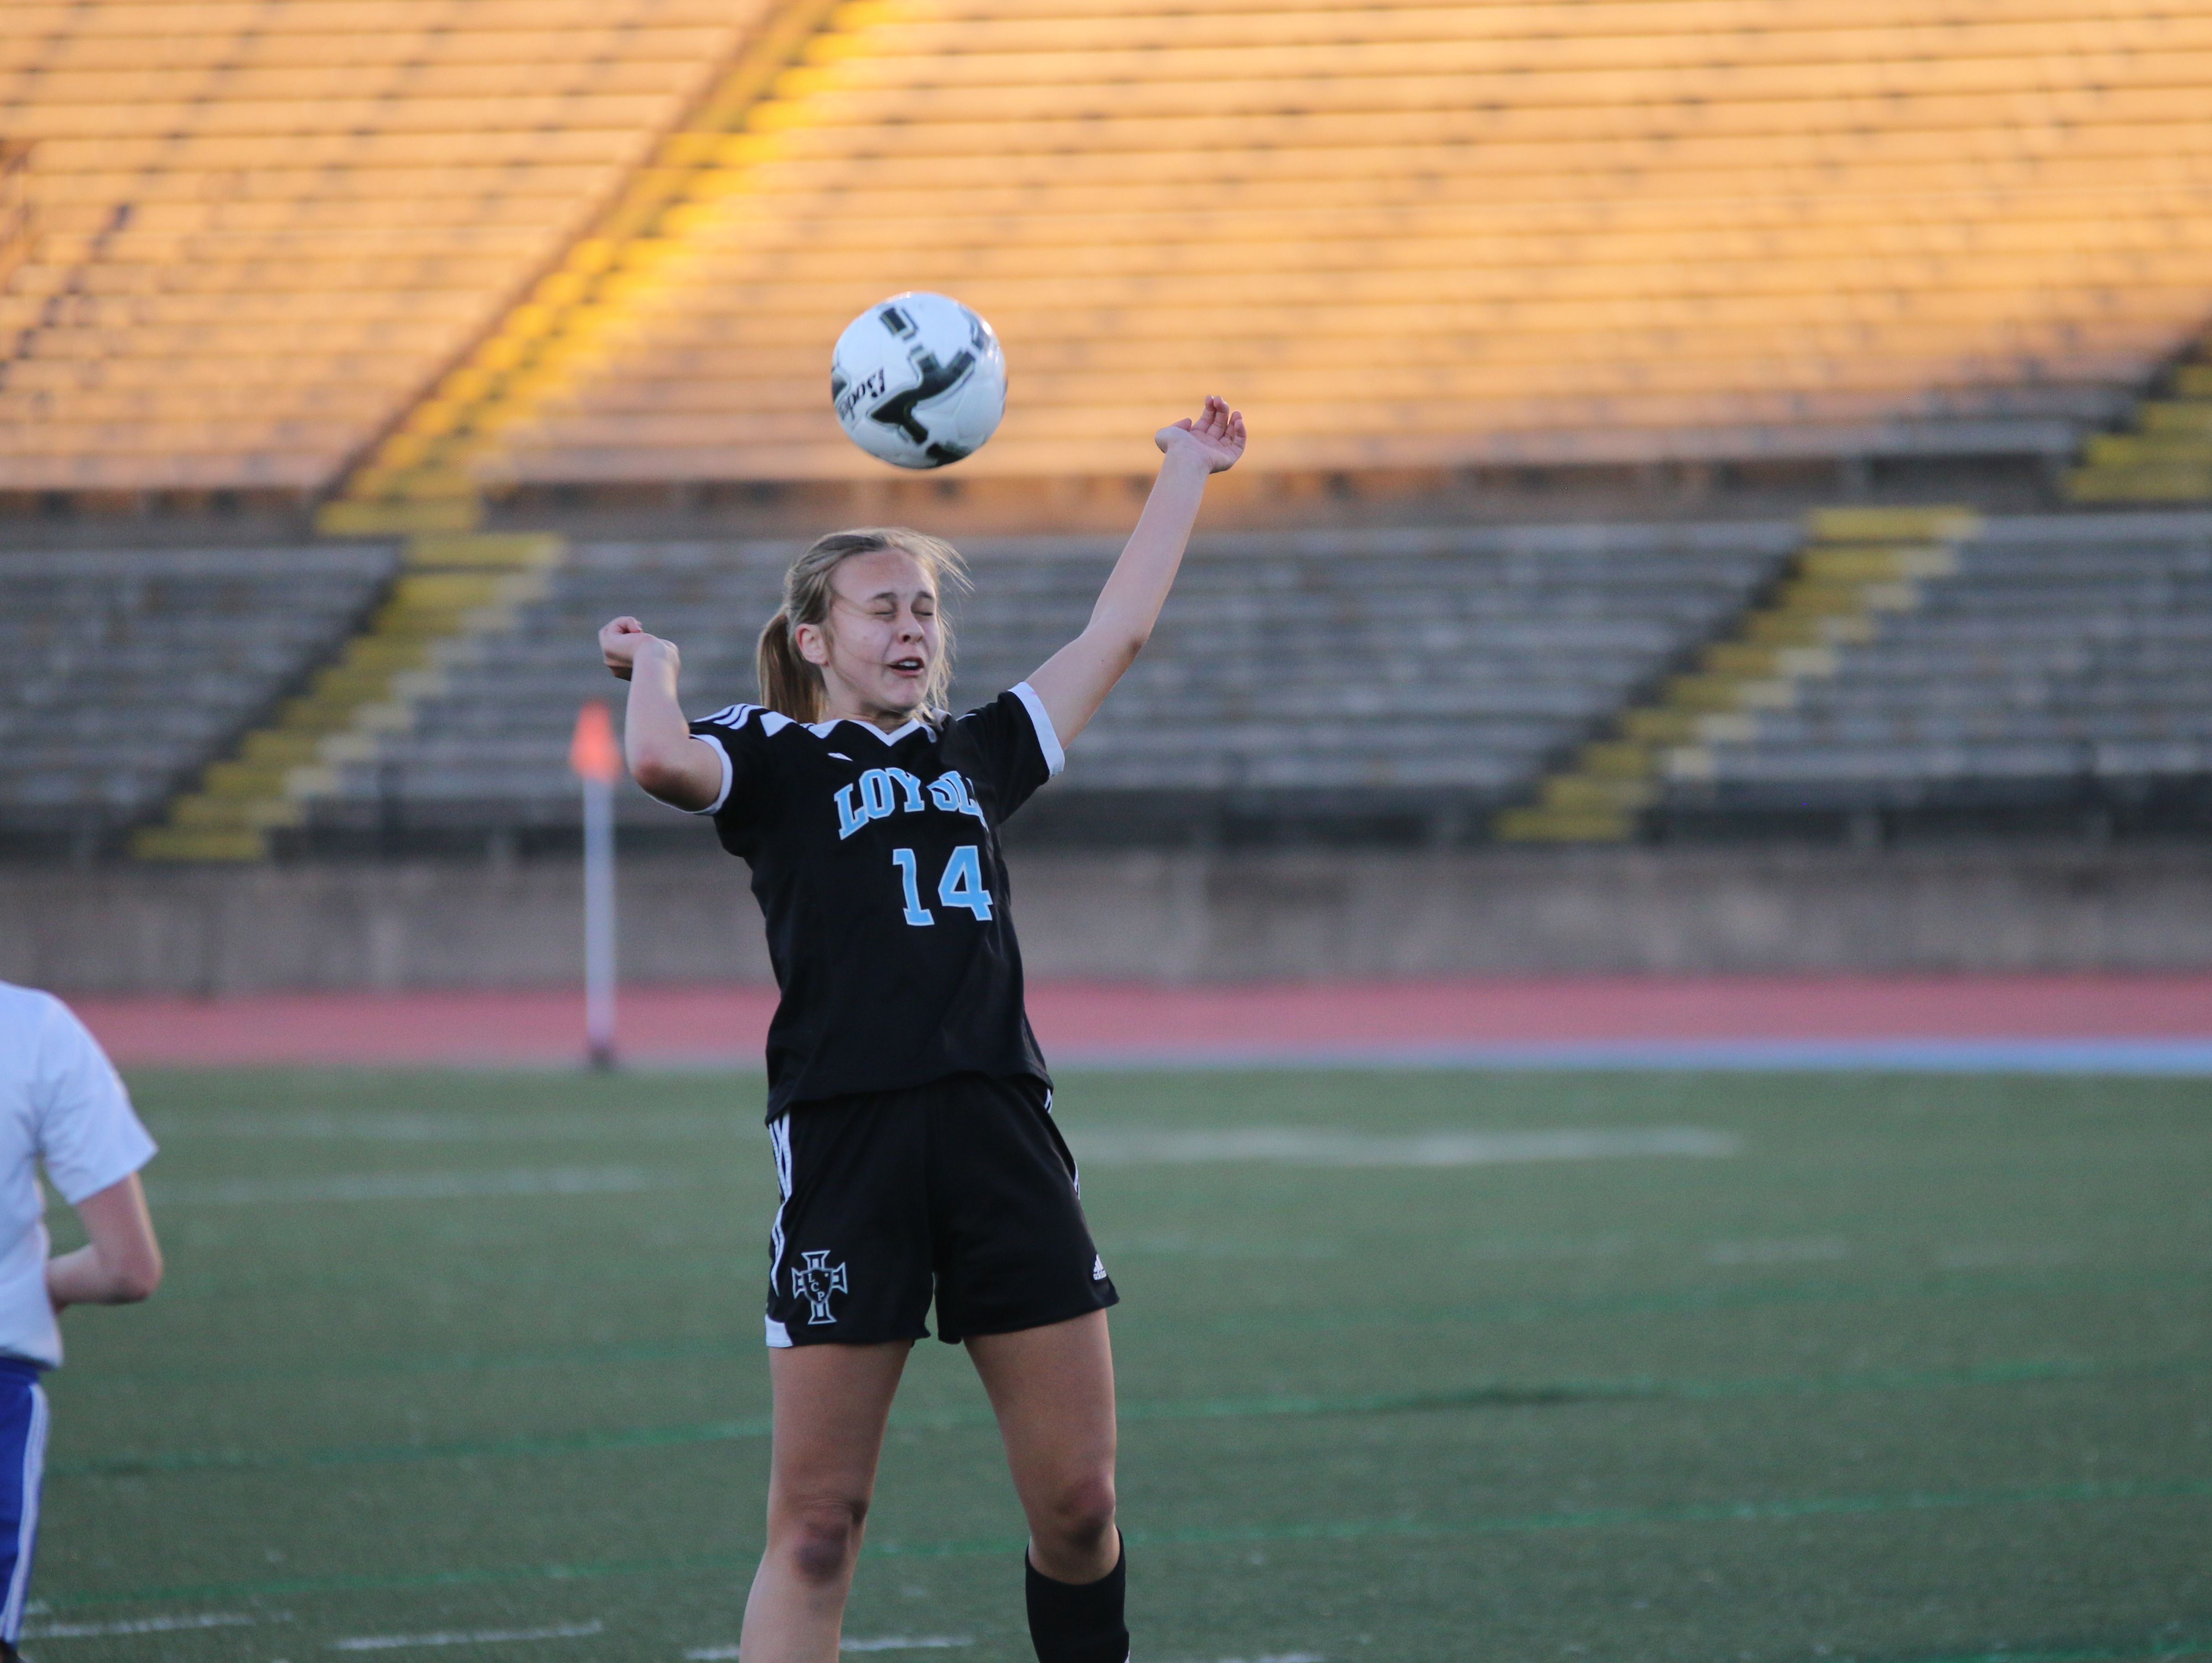 Loyola's Gracie Payne heads a ball in Wednesday's Division III state championship girls soccer game vs. Vandebilt Catholic at Tad Gormley Stadium in New Orleans.